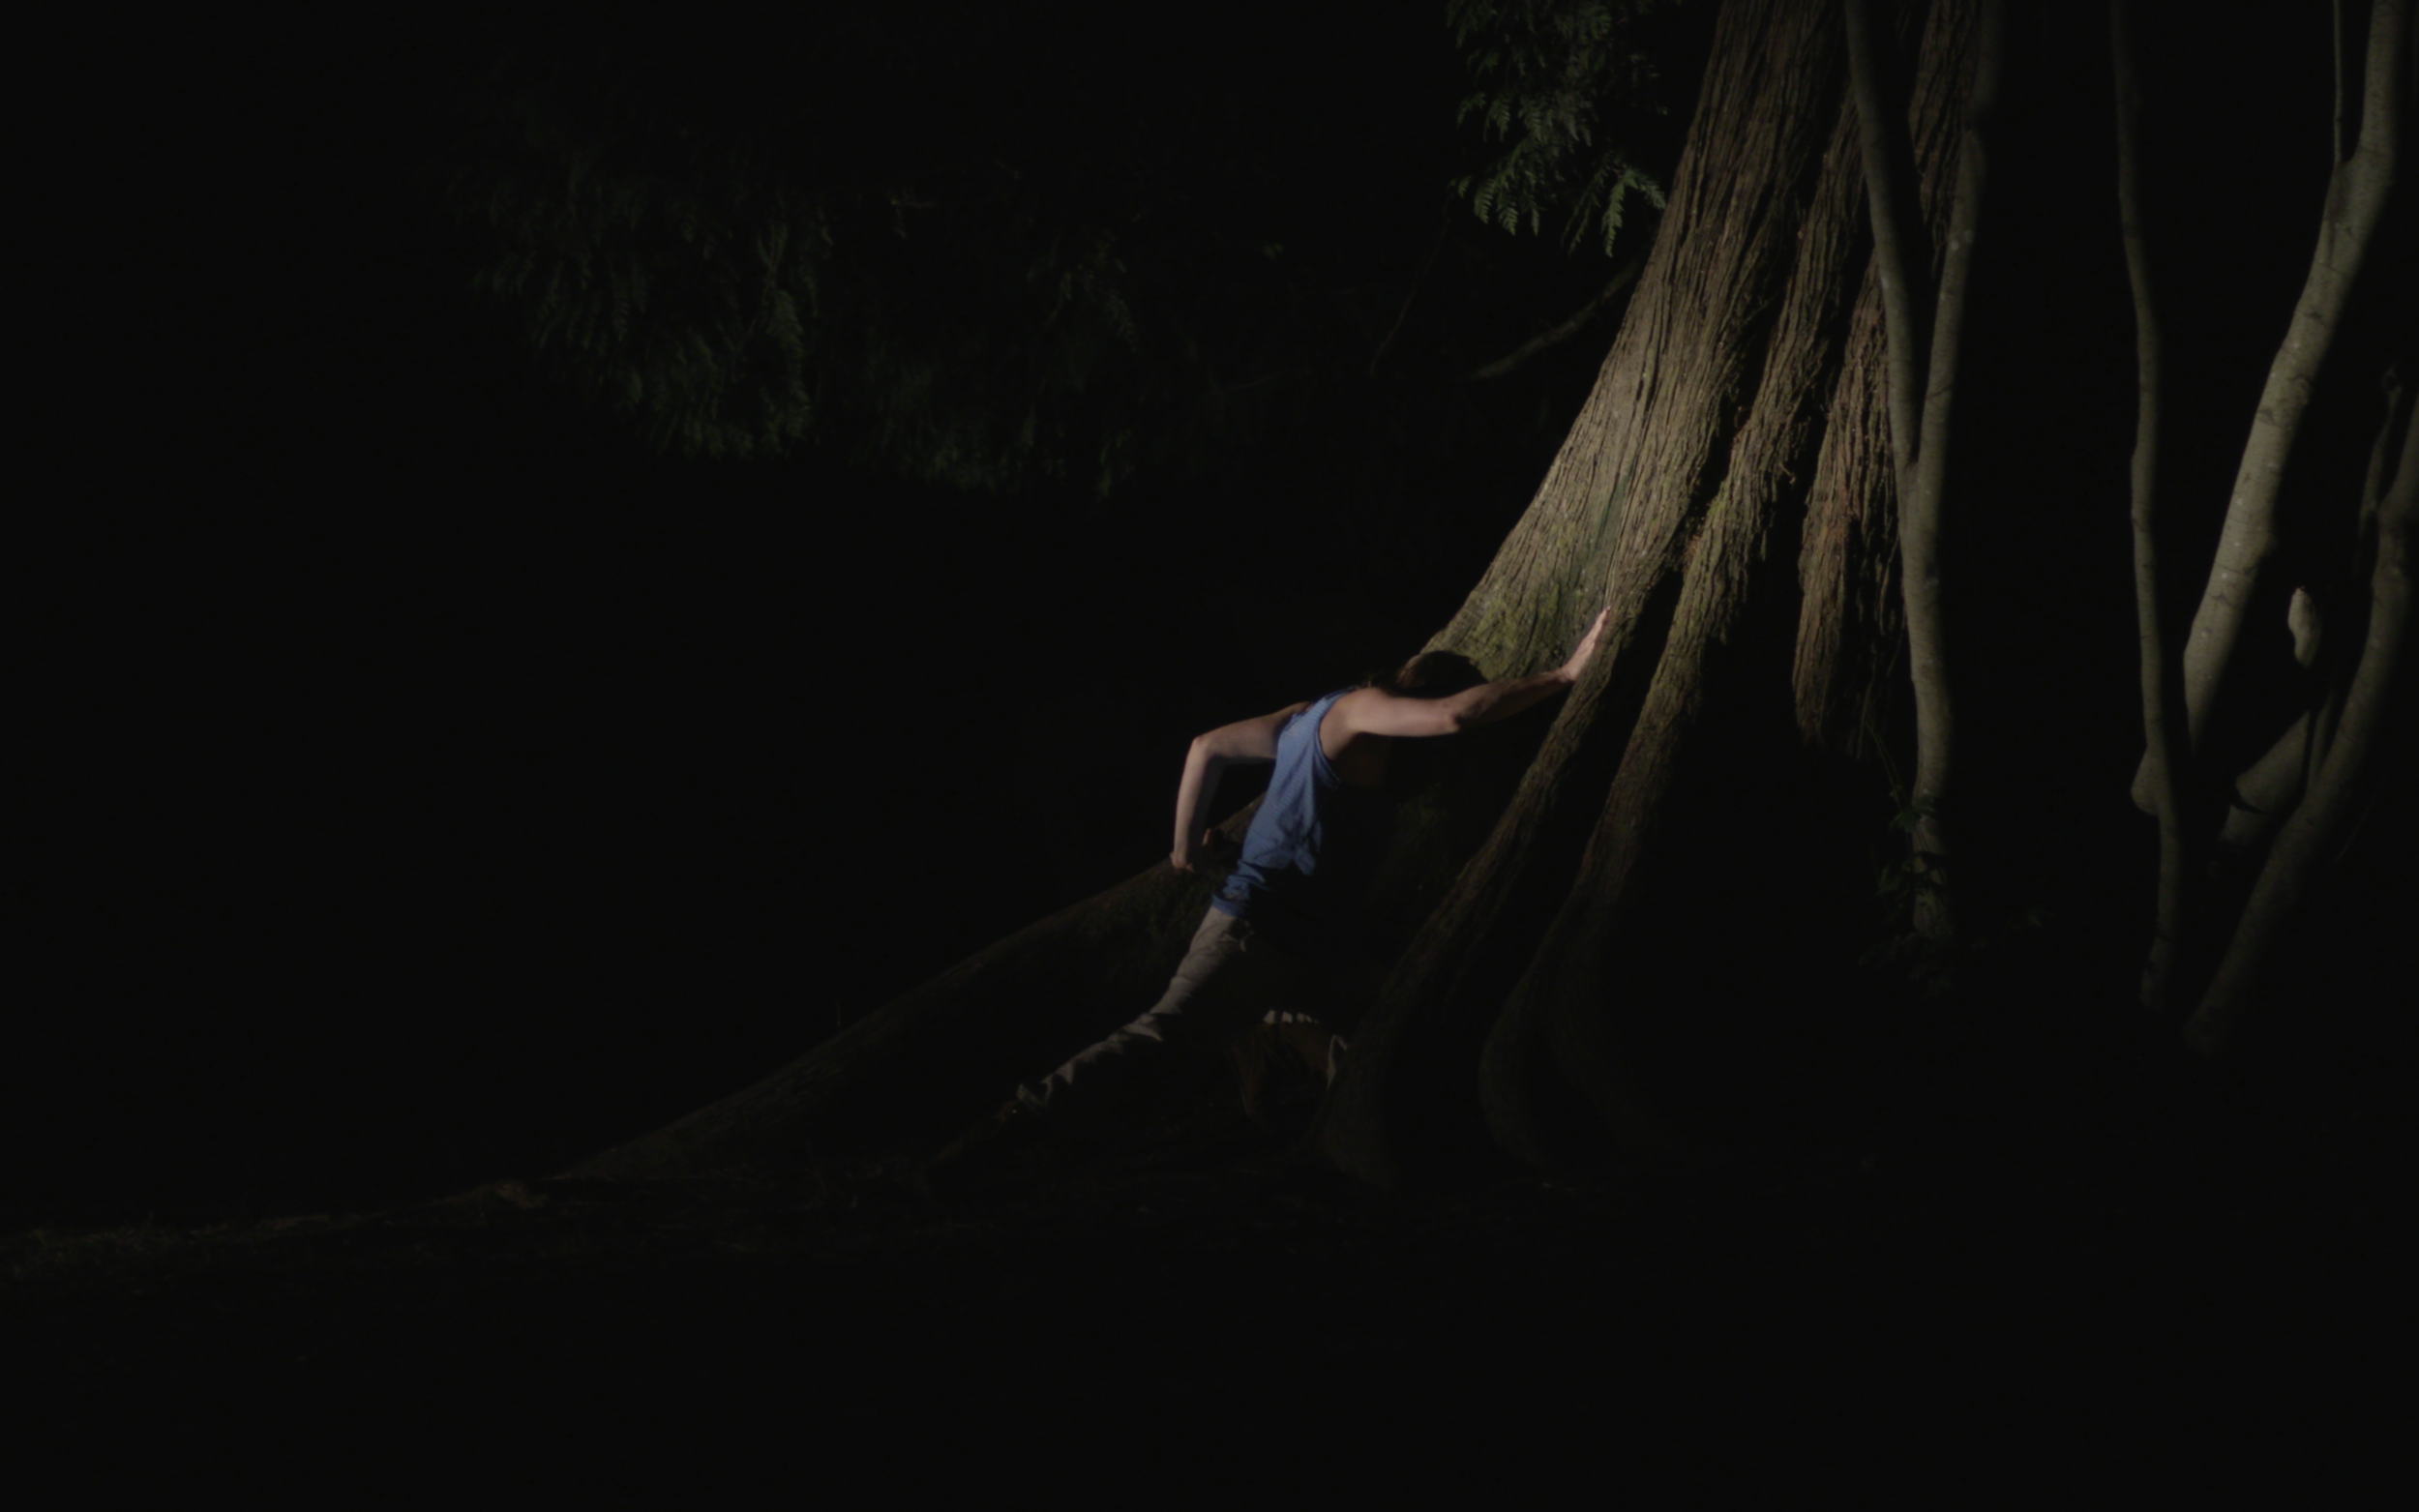 *** BecauseWeAreUsedToLiving ***  Created and performed by Olivia Shaffer, concept by Dave Biddle, cinematography by David Ehrenreich near The Hollow Tree at Stanley Park September 2017